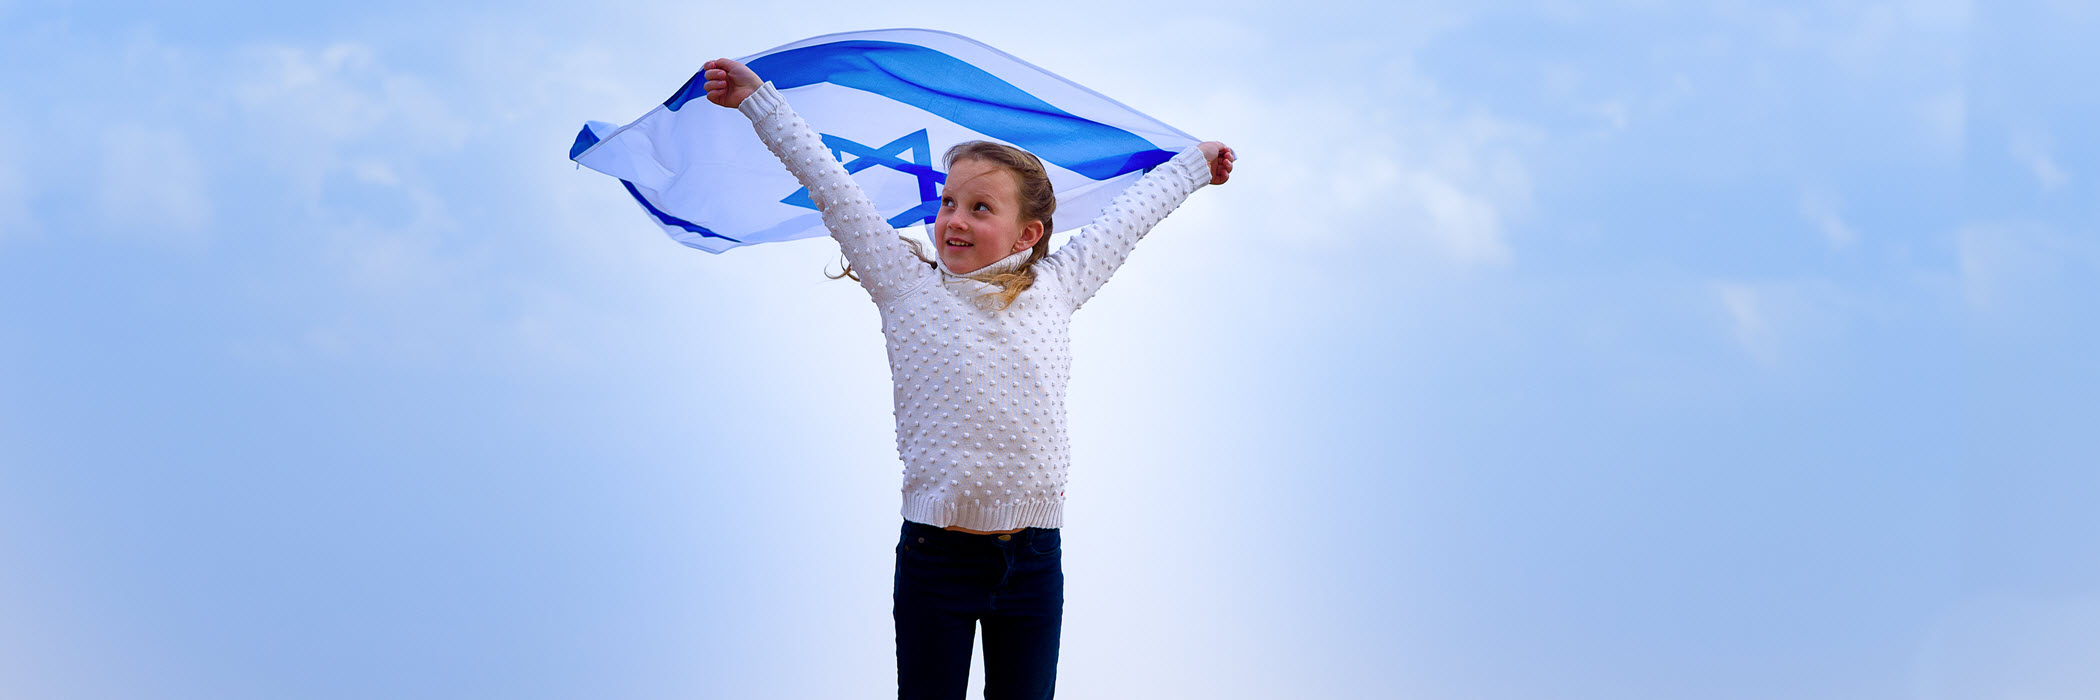 b1985c9b91 Join JFN member Joanna Landau (Founder & CEO, Vibe Israel) to hear research  results on global perceptions of Israel, conducted this Summer among people  aged ...